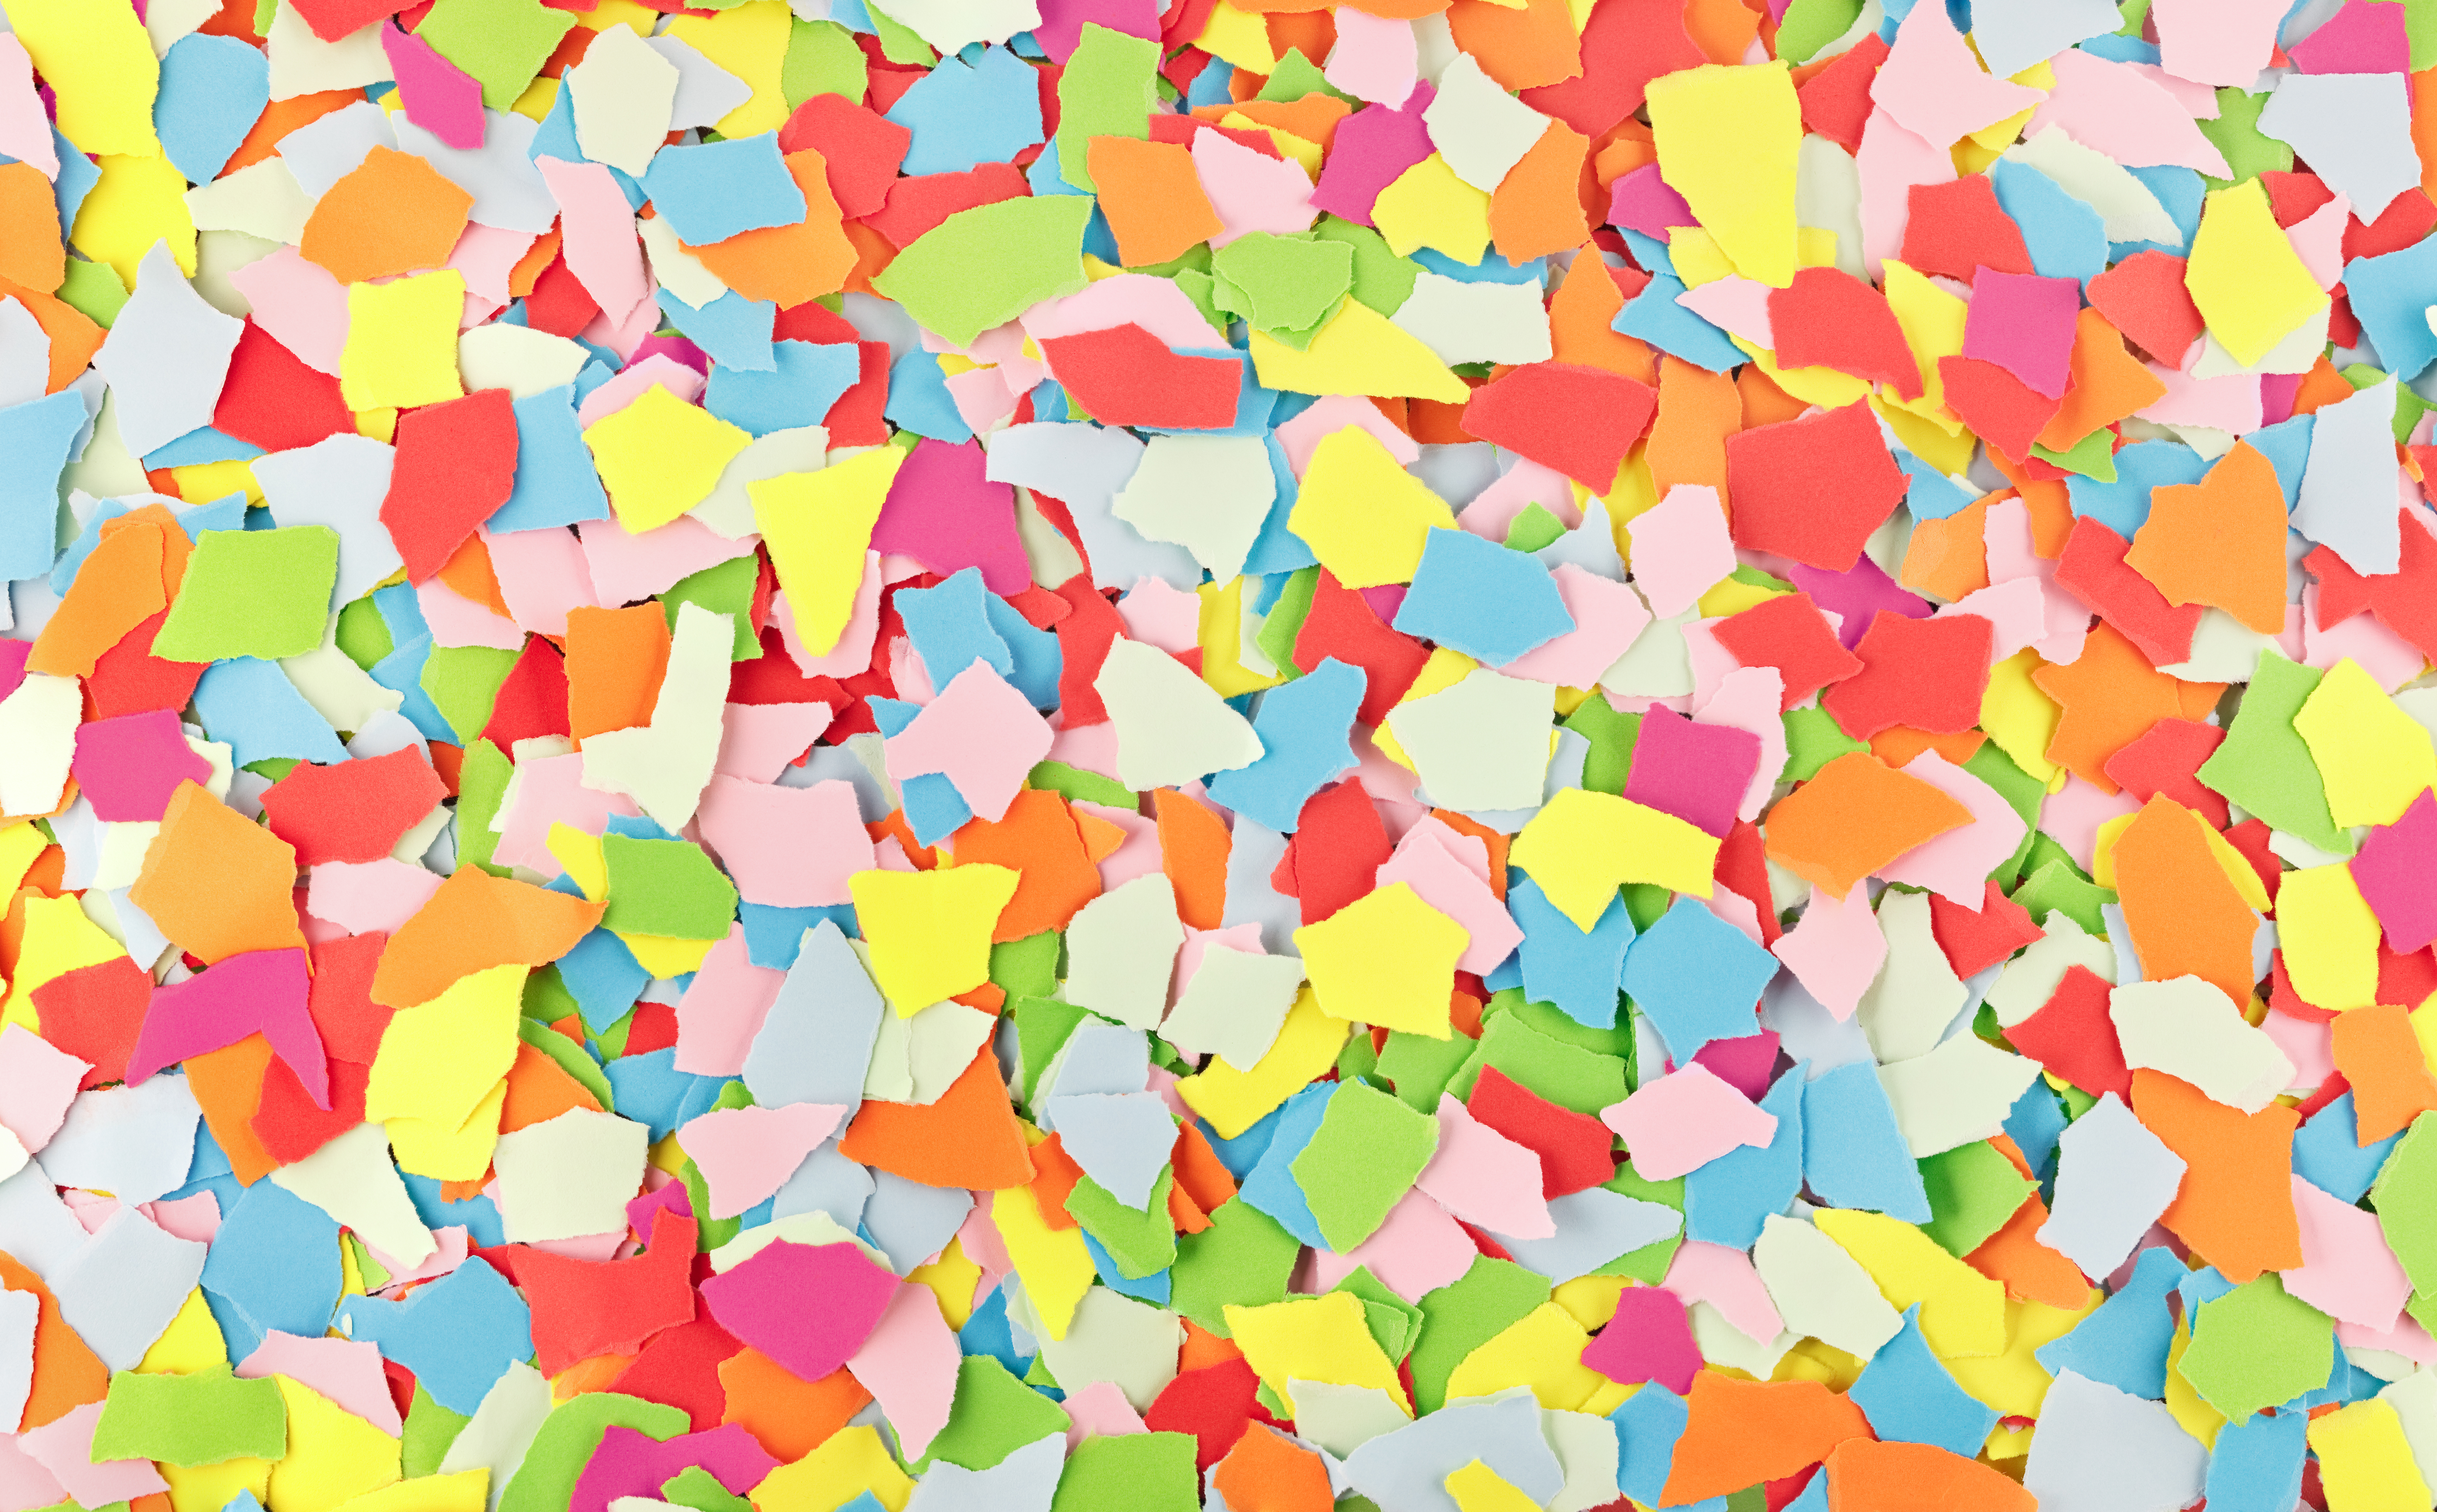 Image of colorful scraps of torn paper to represent snippets.